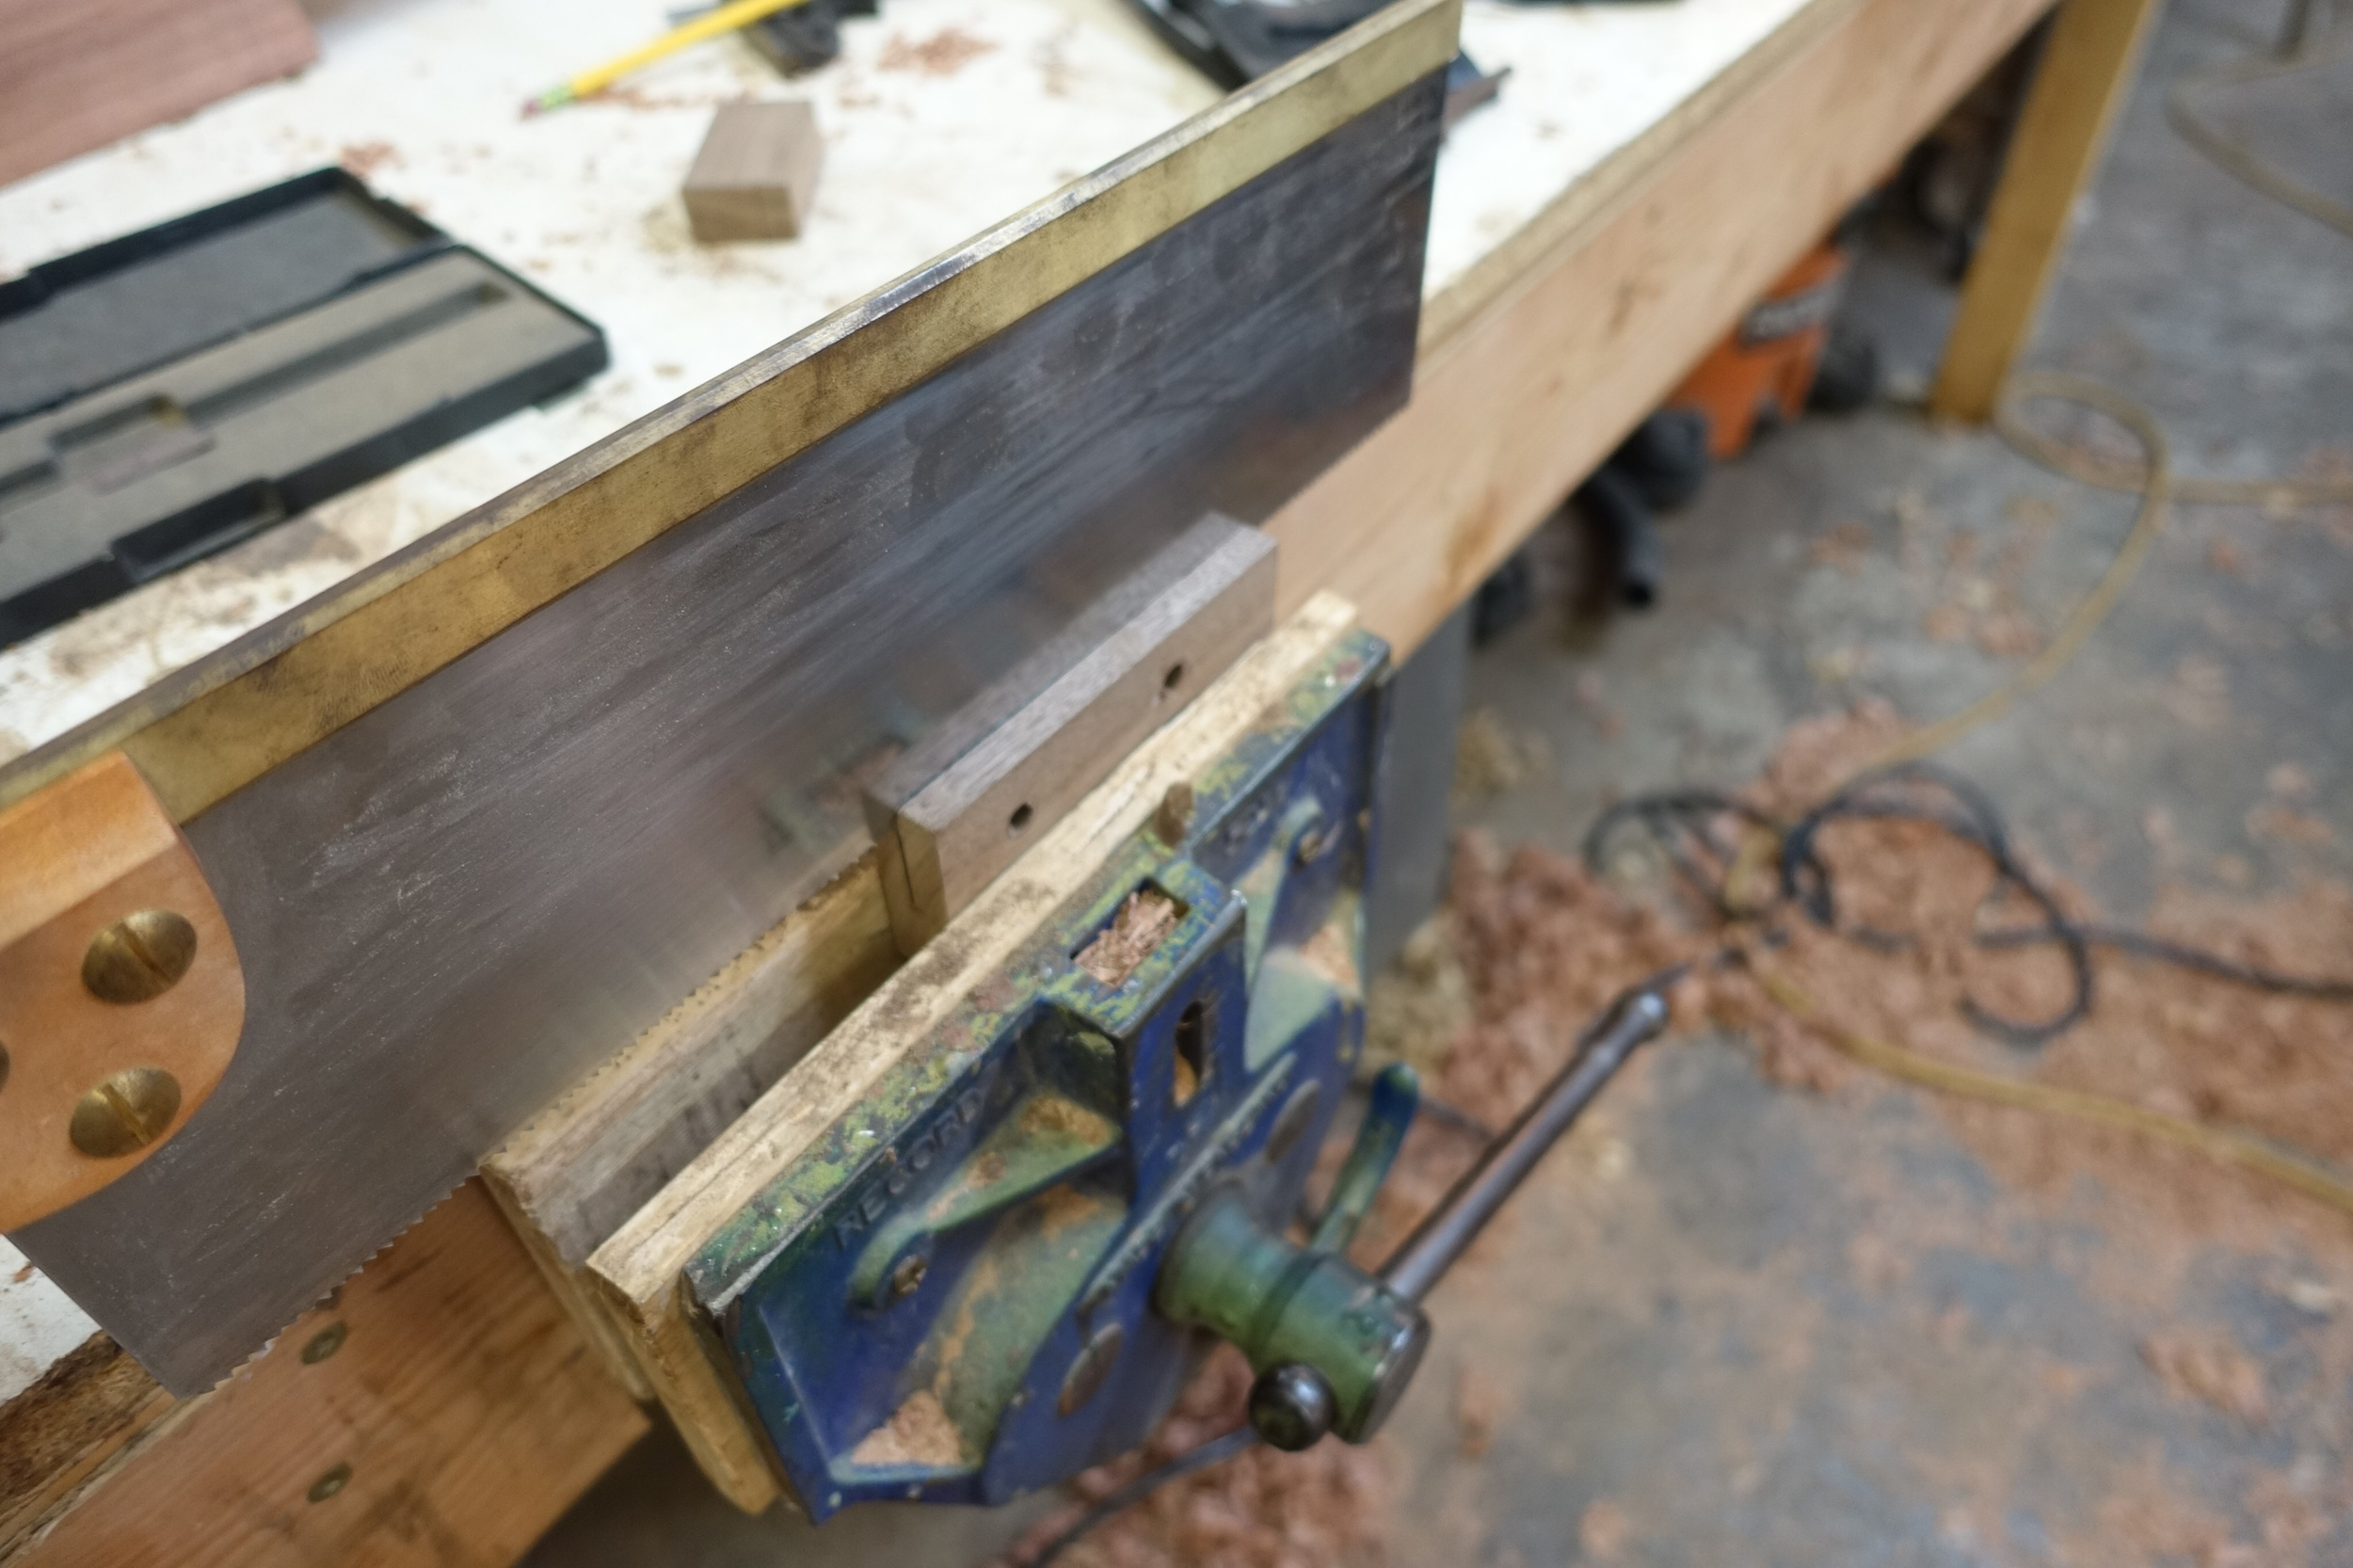 Sawing the kerf that the cutter rests in